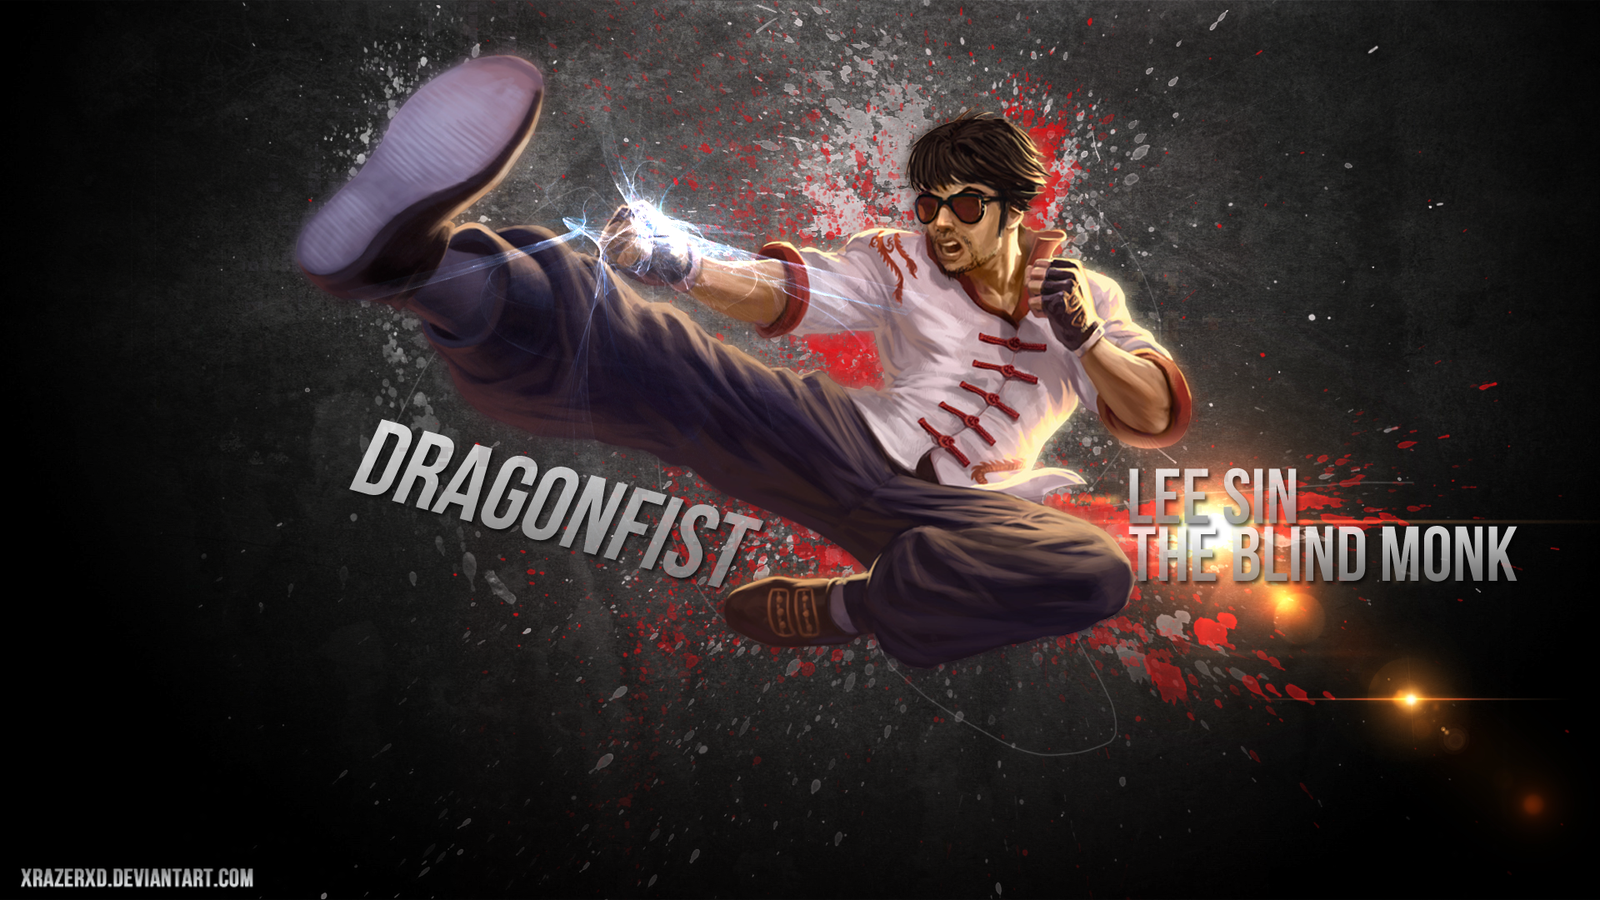 LoL - Dragon Fist Lee Sin | The Blind Monk WP by xRazerxD on